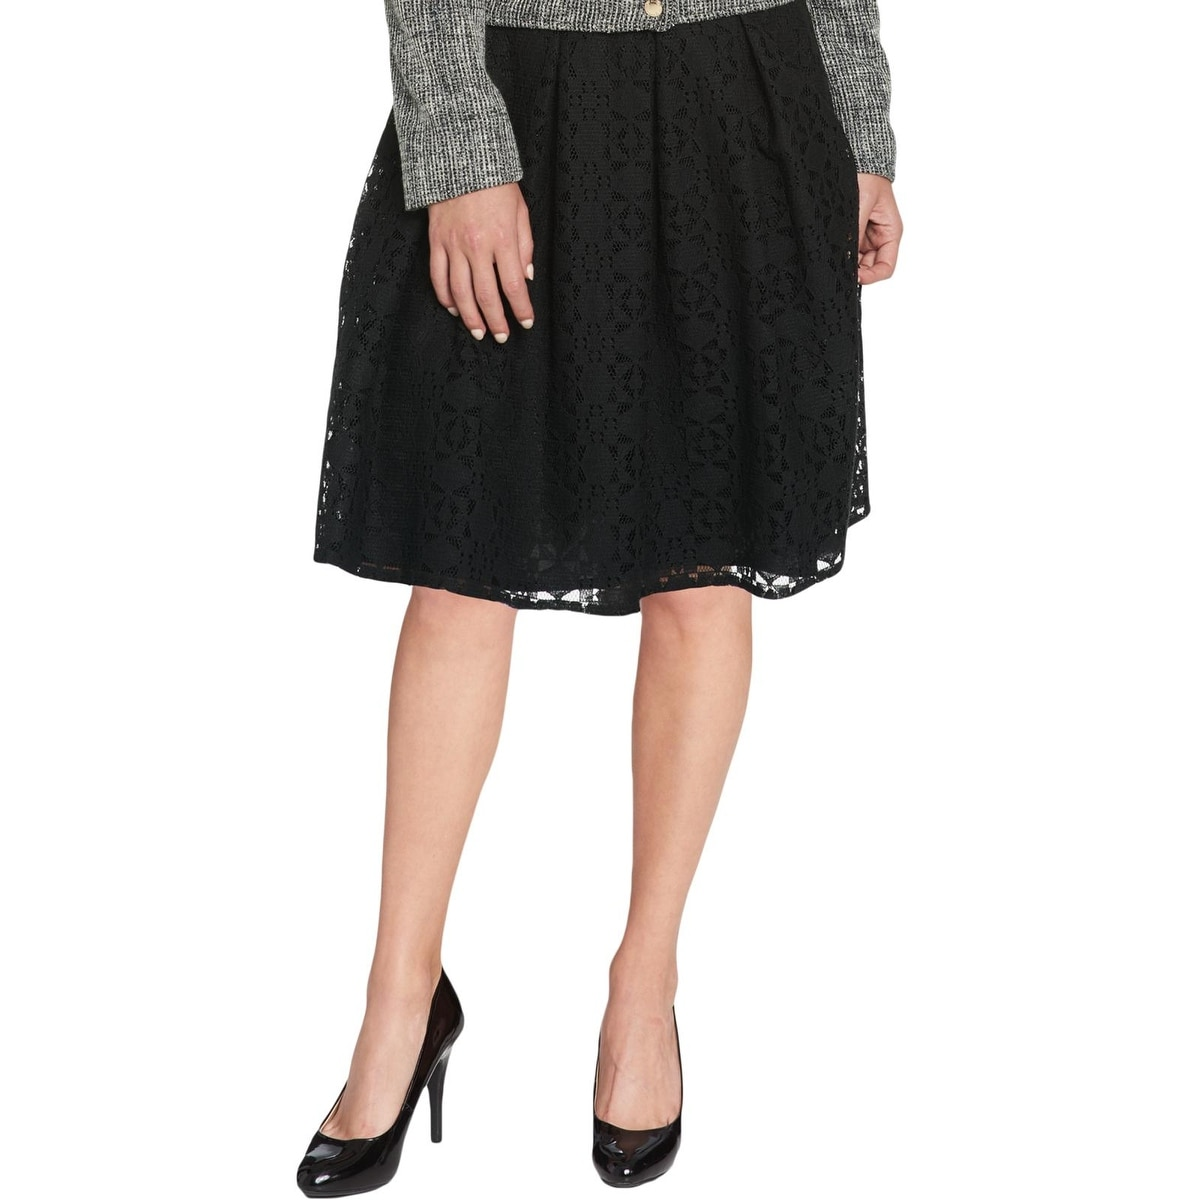 80d7432f37 Size 0 Skirts | Find Great Women's Clothing Deals Shopping at Overstock